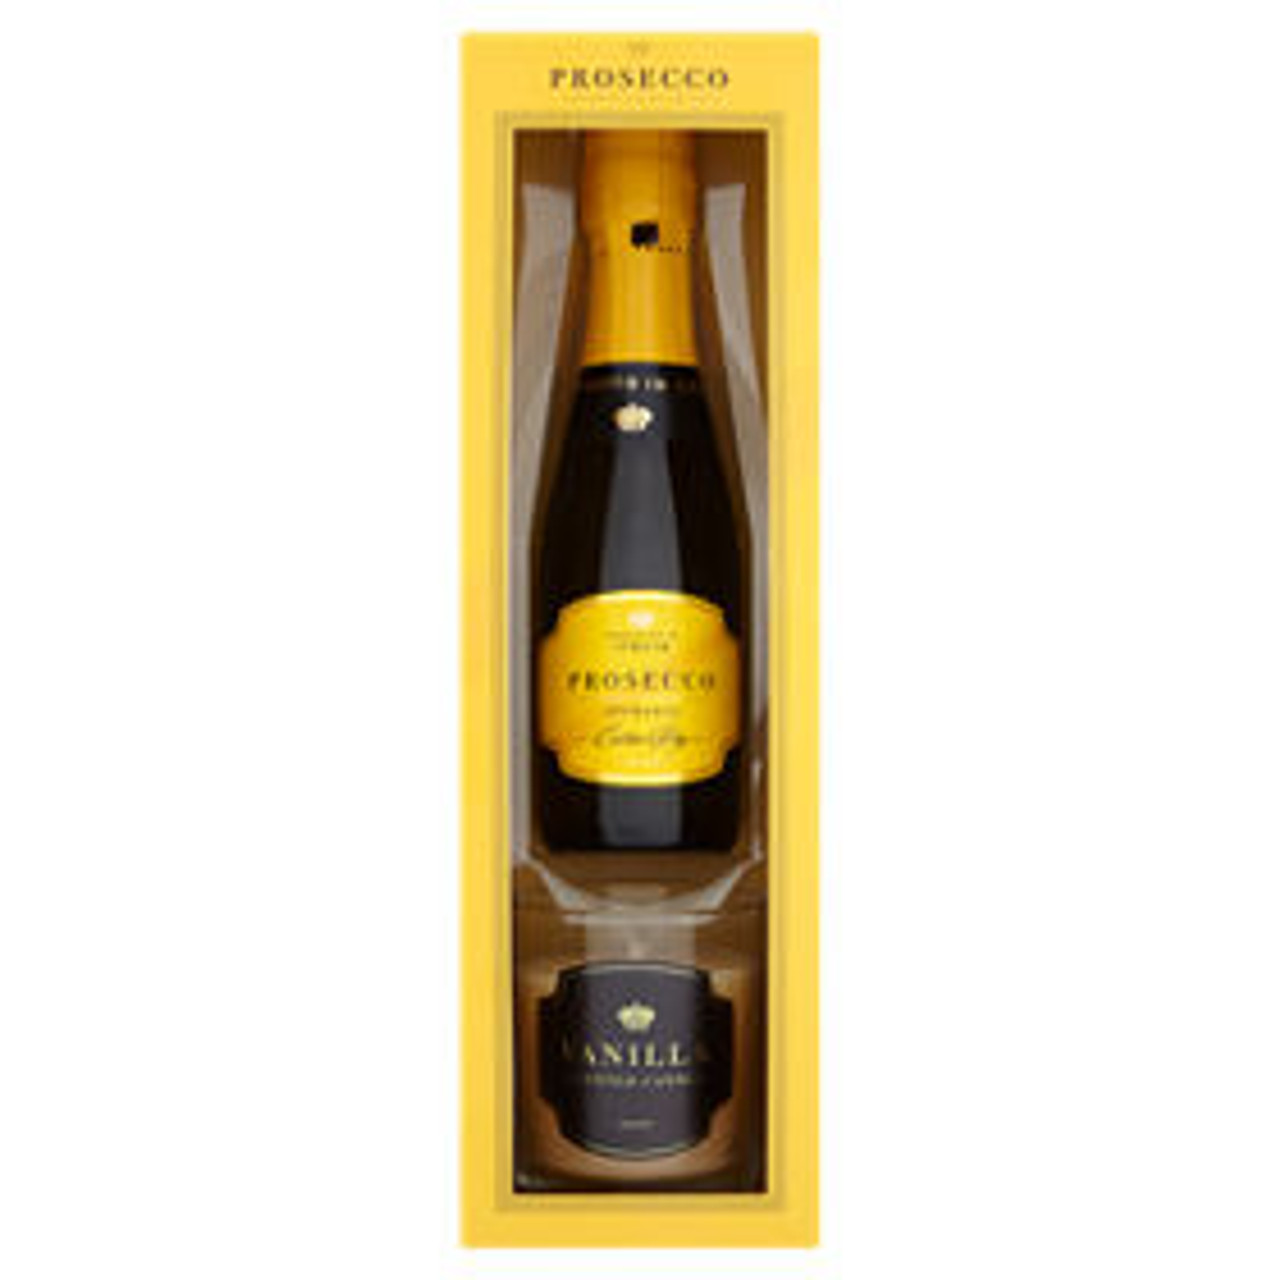 Prosecco Vino Spumante Extra Dry 20cl Vanilla Scented Candle Gift Set Champagne One